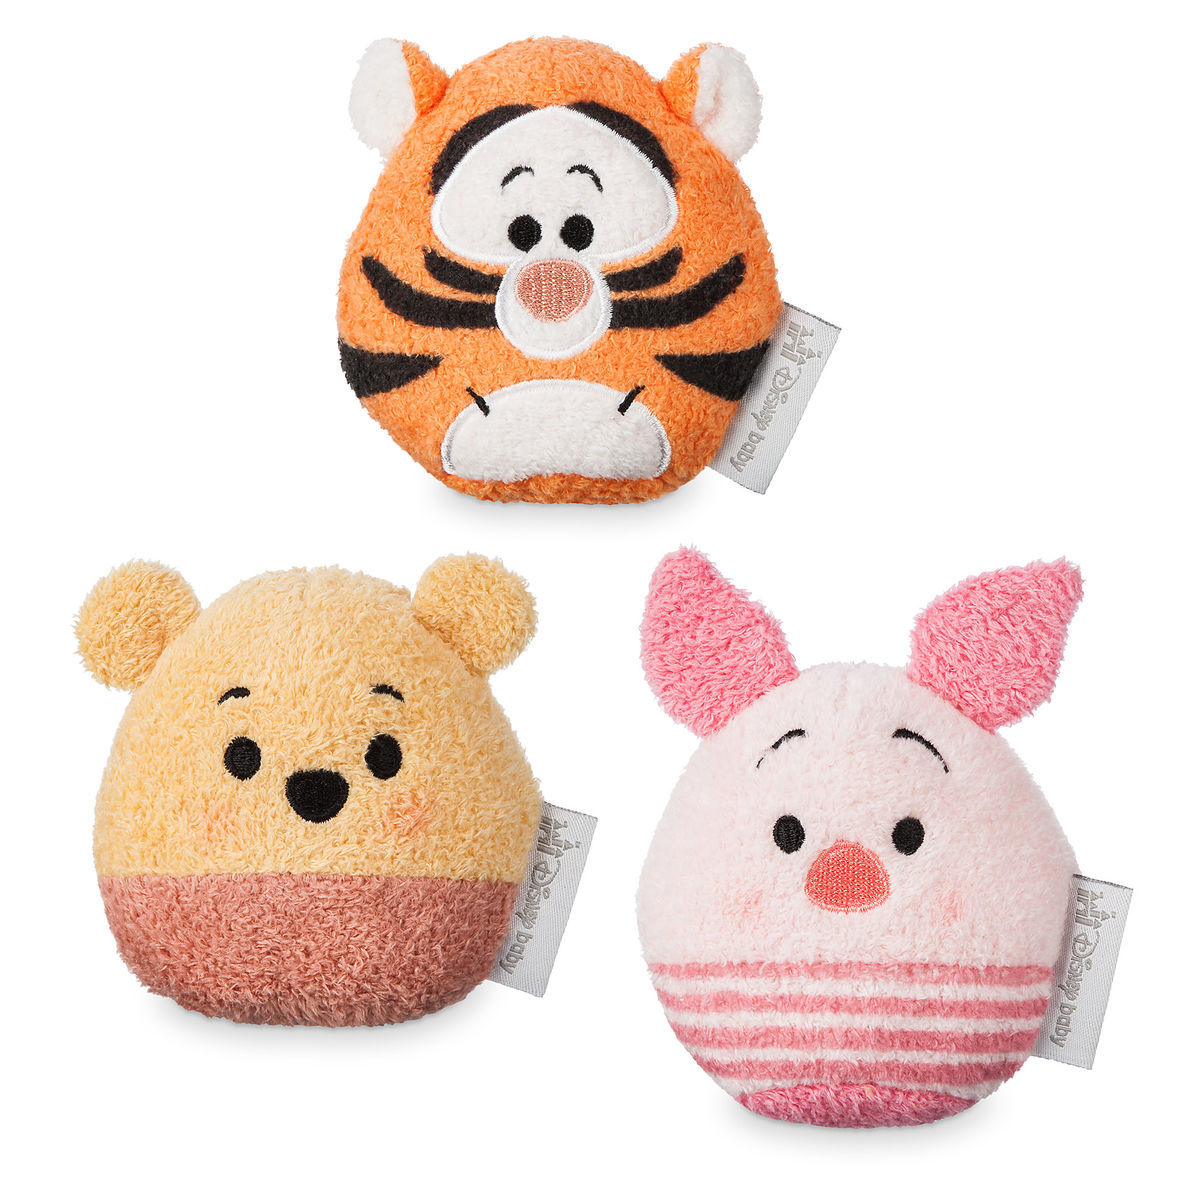 Product Image of Winnie the Pooh Plush Toy Set for Baby   1 474967574